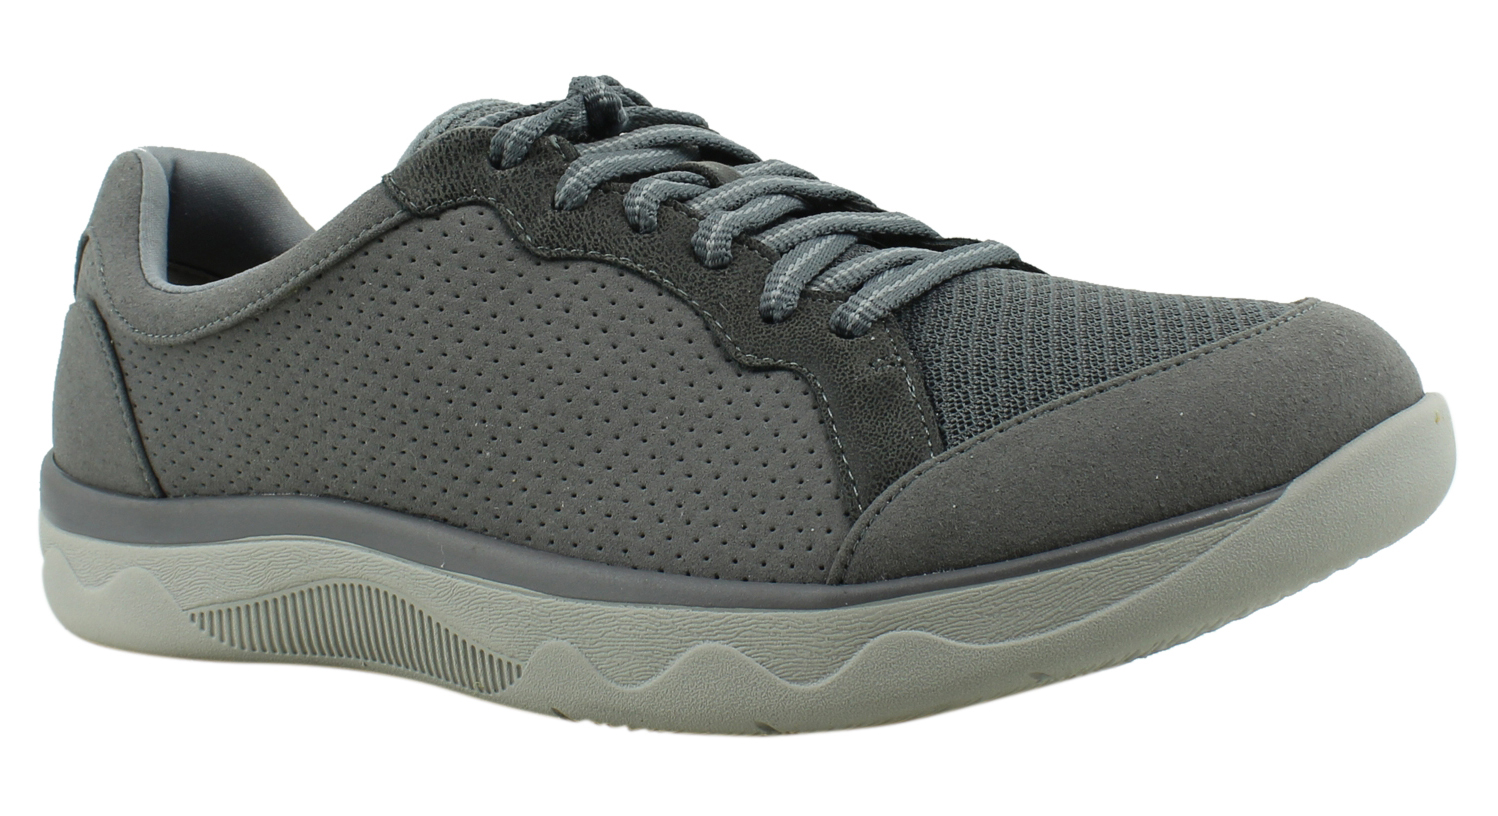 Cloudsteppers By Shoes Clarks Womens - Gray Fashion Shoes By Size 10 (424207) e2e96b